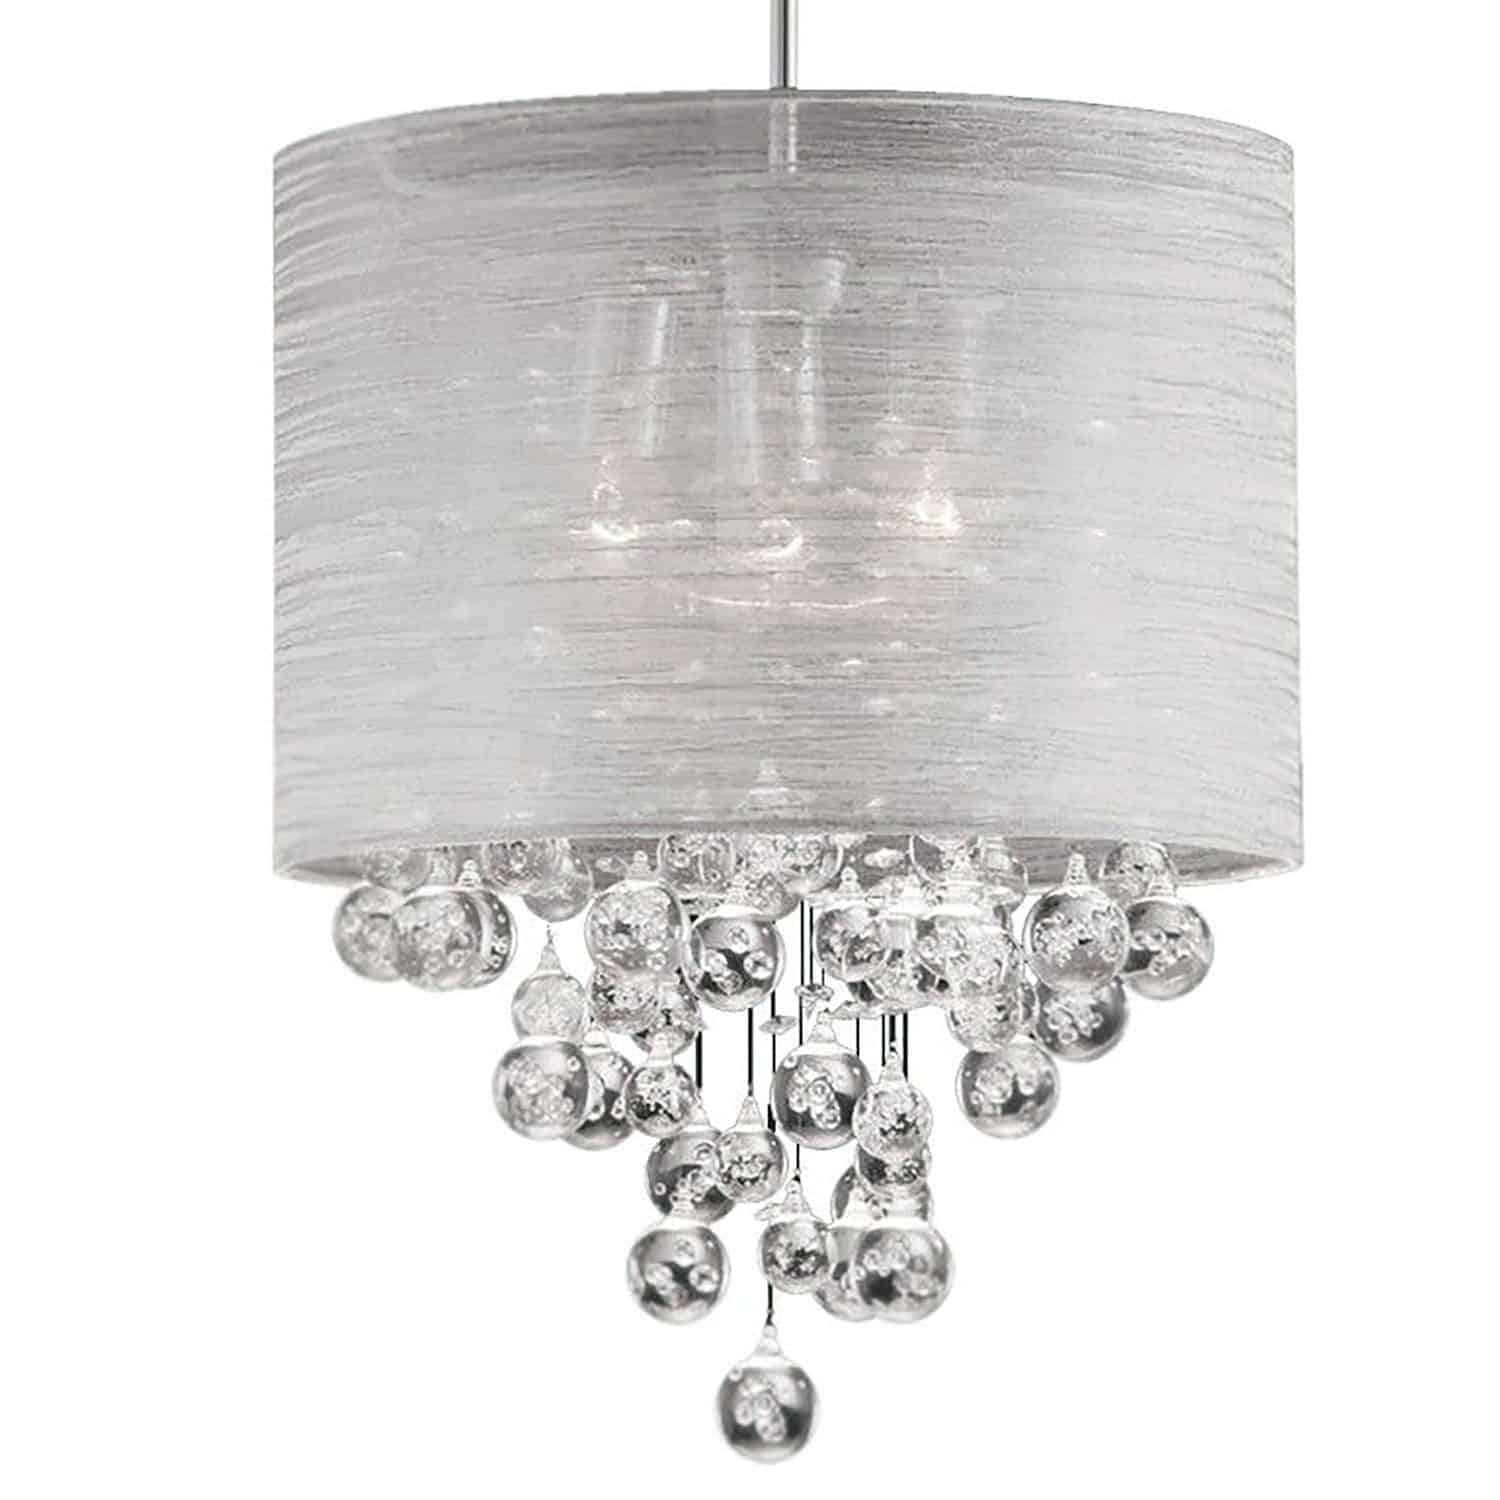 3 Light Incandescent Crystal Pendant Polished Chrome Finish with Silver Organza Shade